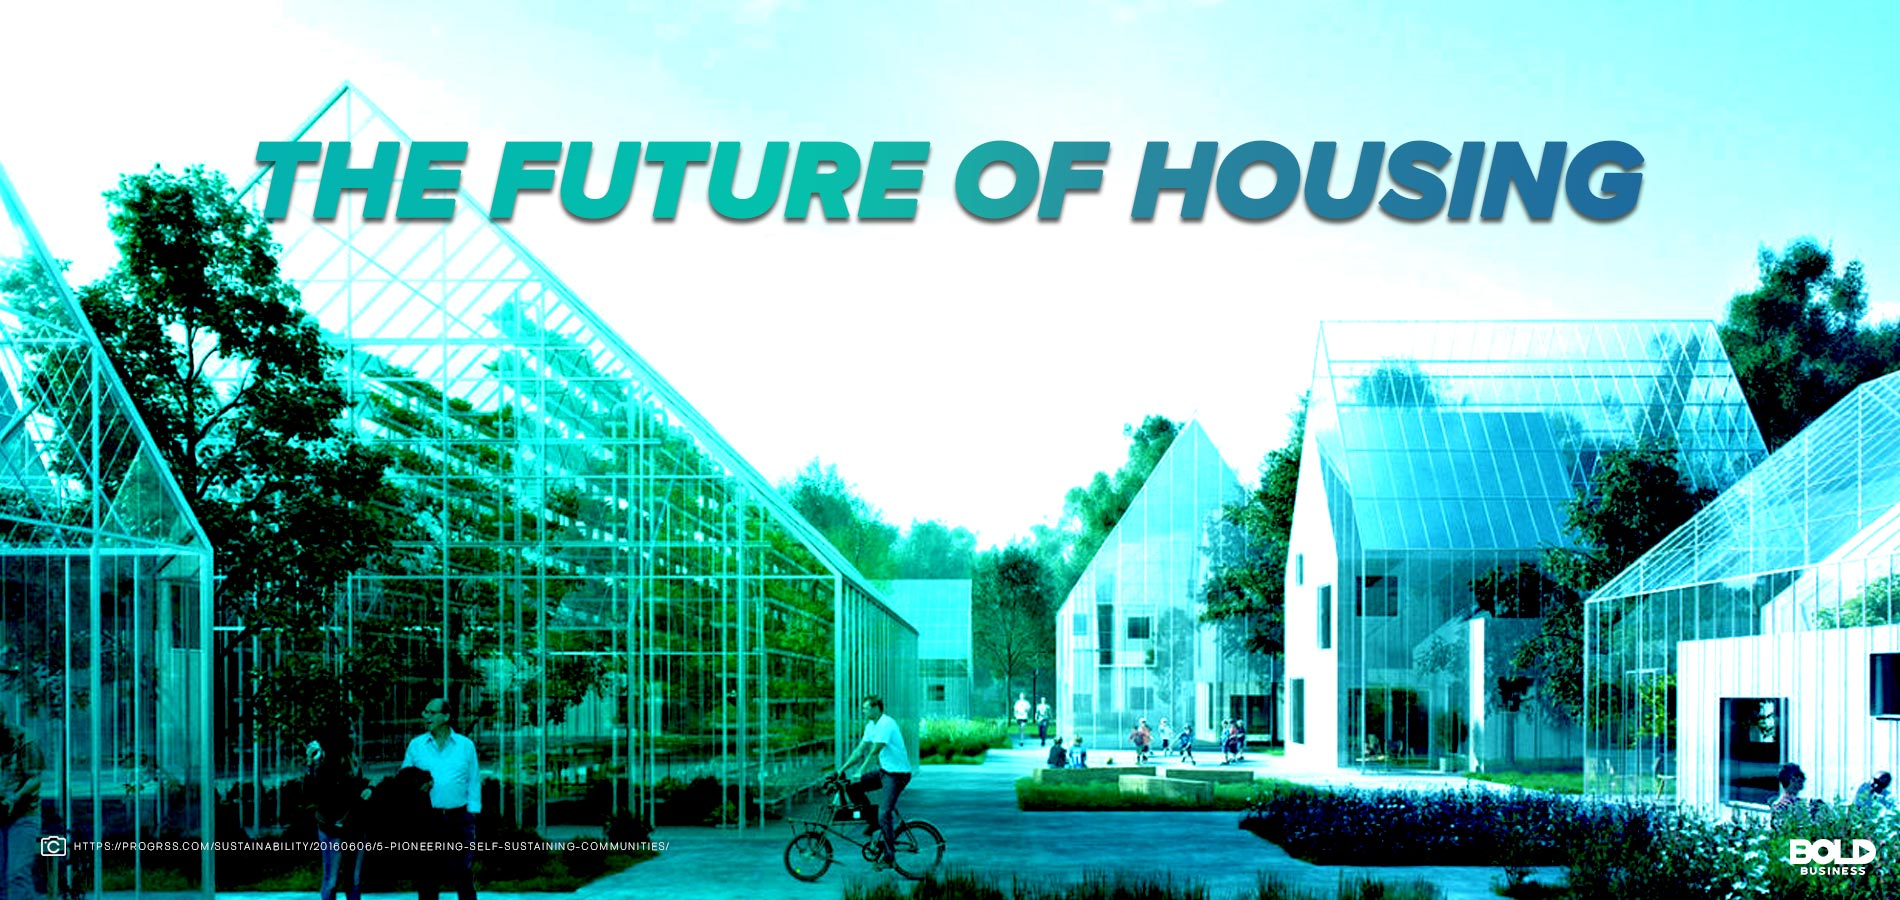 picture showing future of housing development models